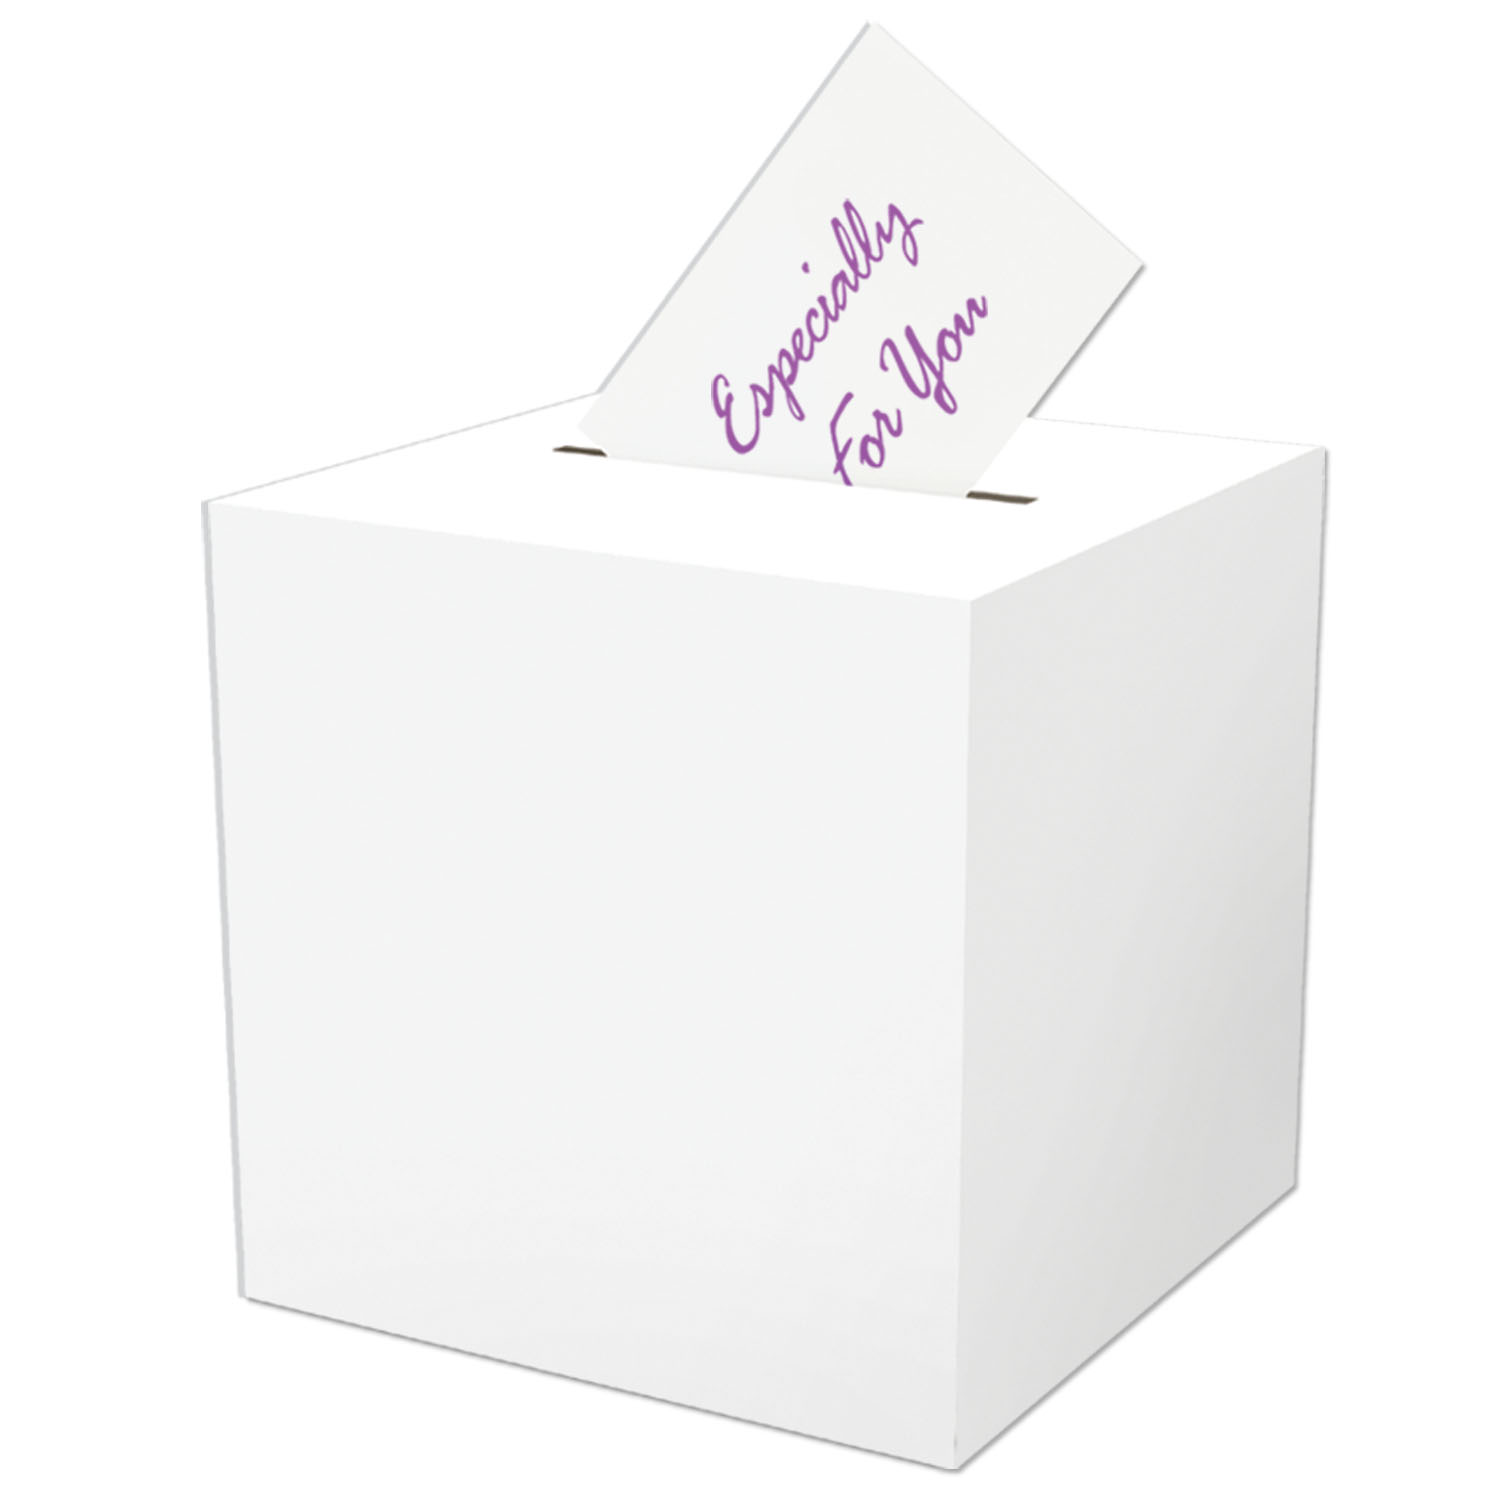 All-Purpose  Receiving-Box  (Pack of 6) Receiving, box, cards, birthday, wholesale, inexpensive, bulk, decoration